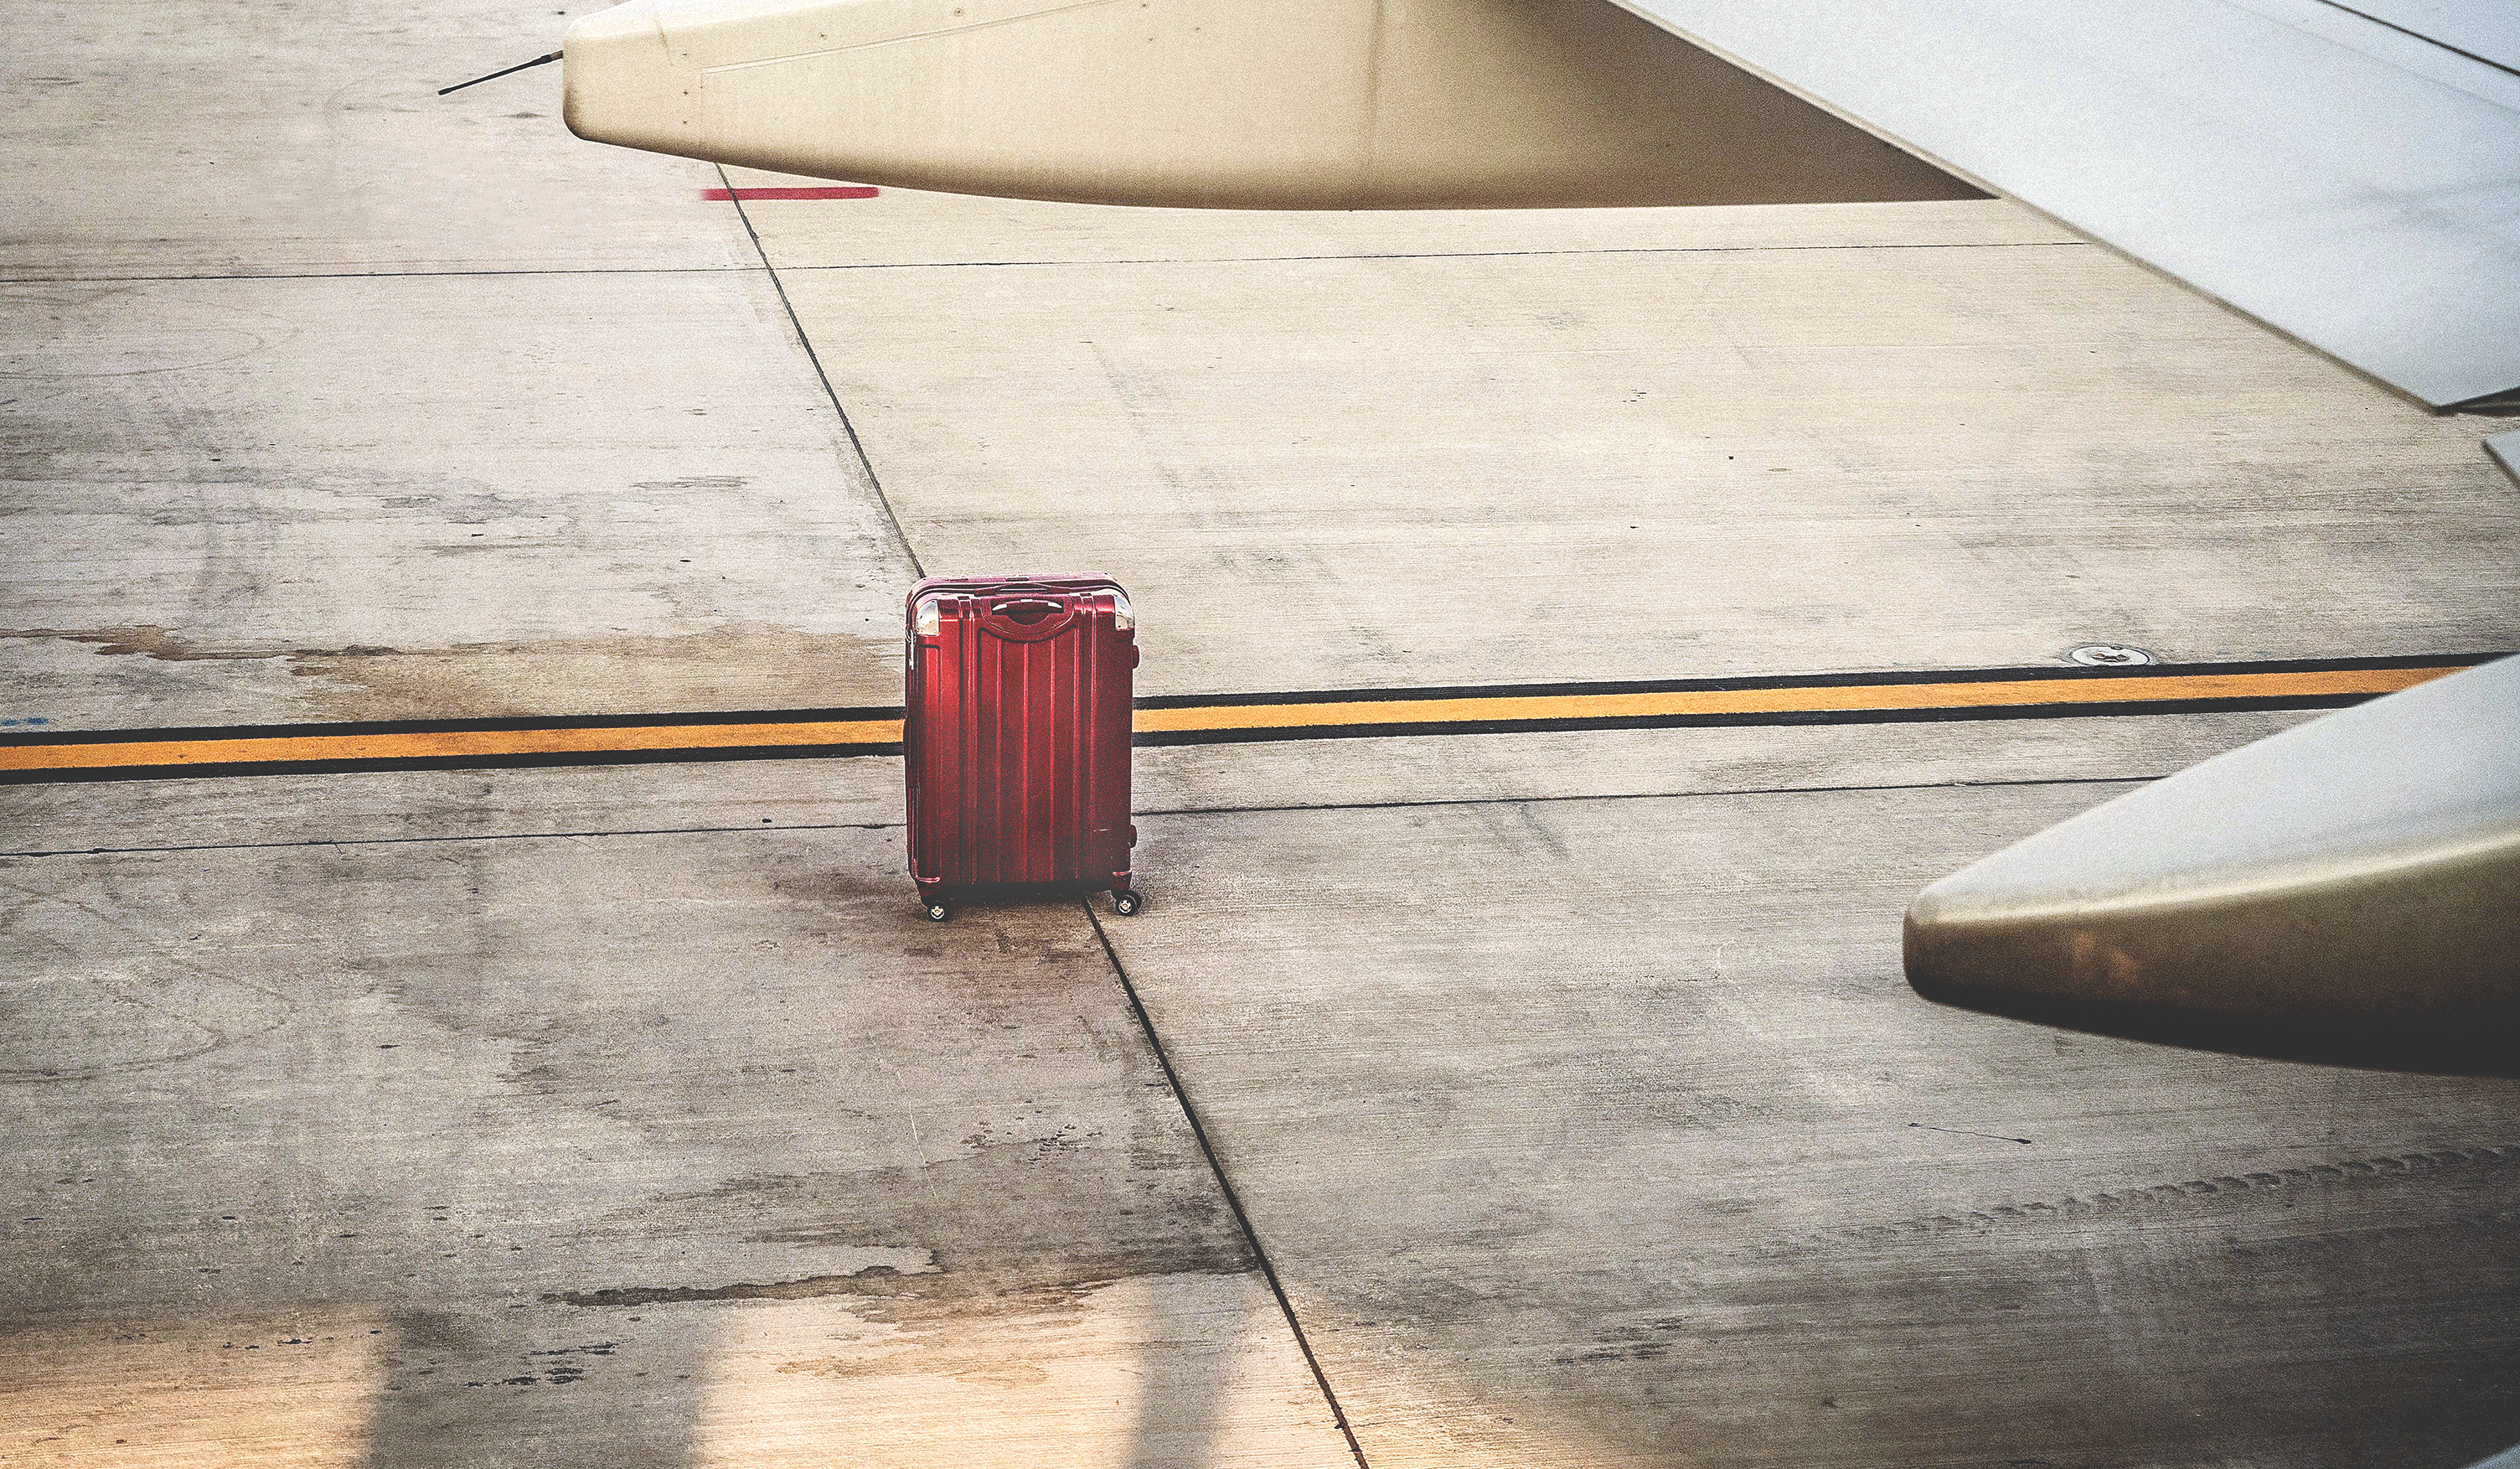 A single red suitcase on the tarmac near an airplane.>From Media Library>From Media Library>From Media Library>From Media Library>From Media Library>From Media Library>From Media Library>From Media Library